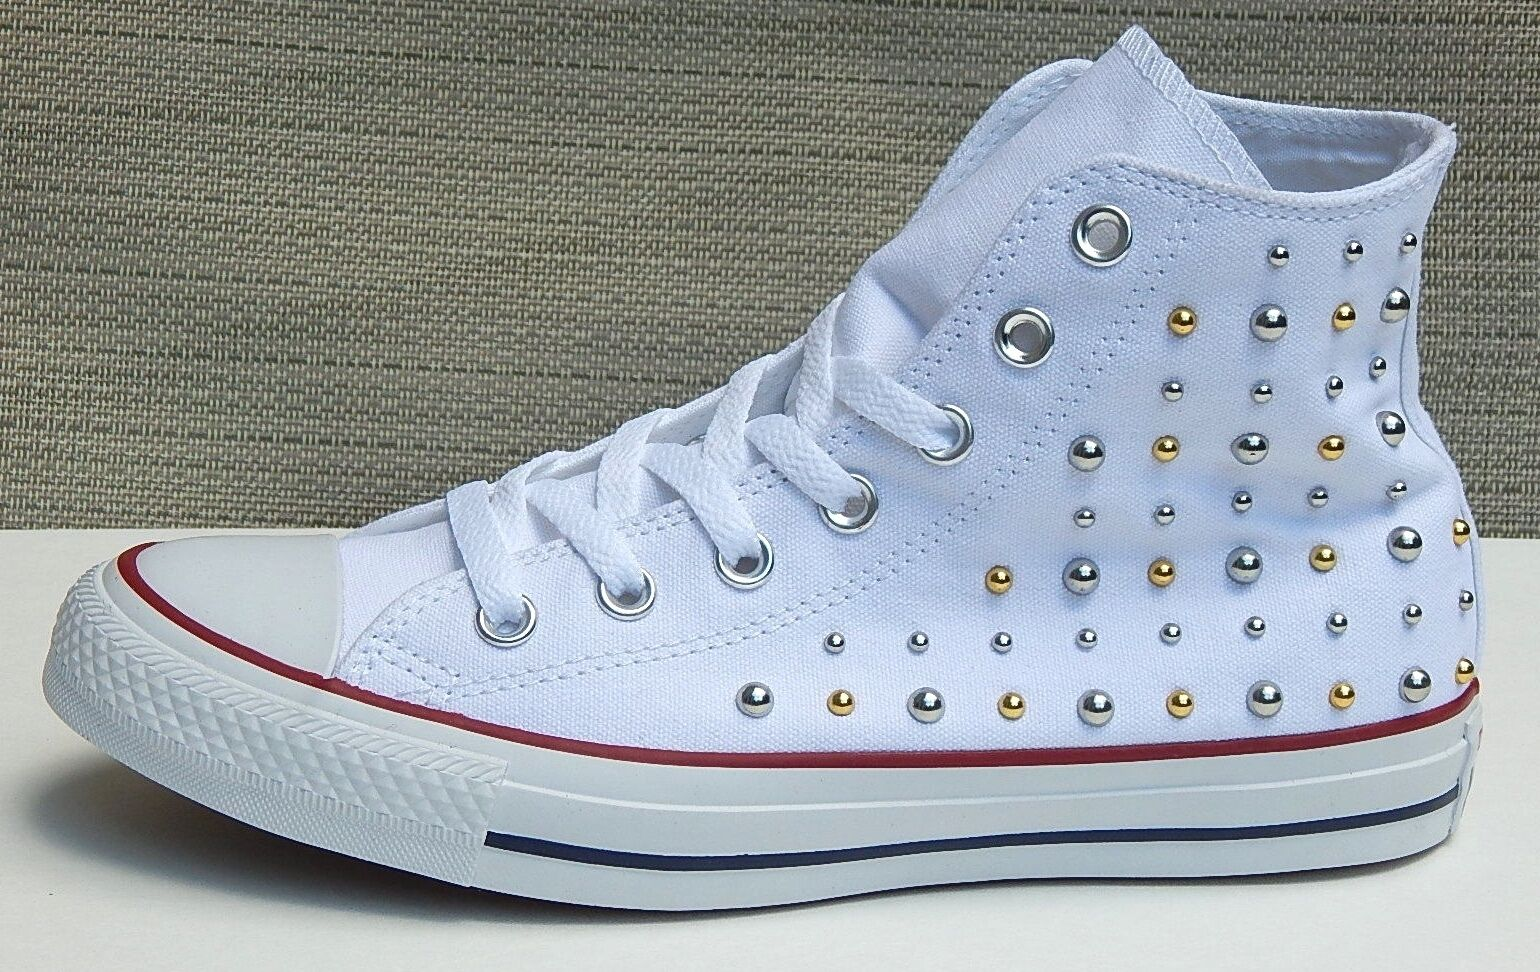 CONVERSE ALL STAR CHUCK TAYLOR WOMEN'S SNEAKERS WEISS WITH STUDS sz 8 NEW AUTHNT